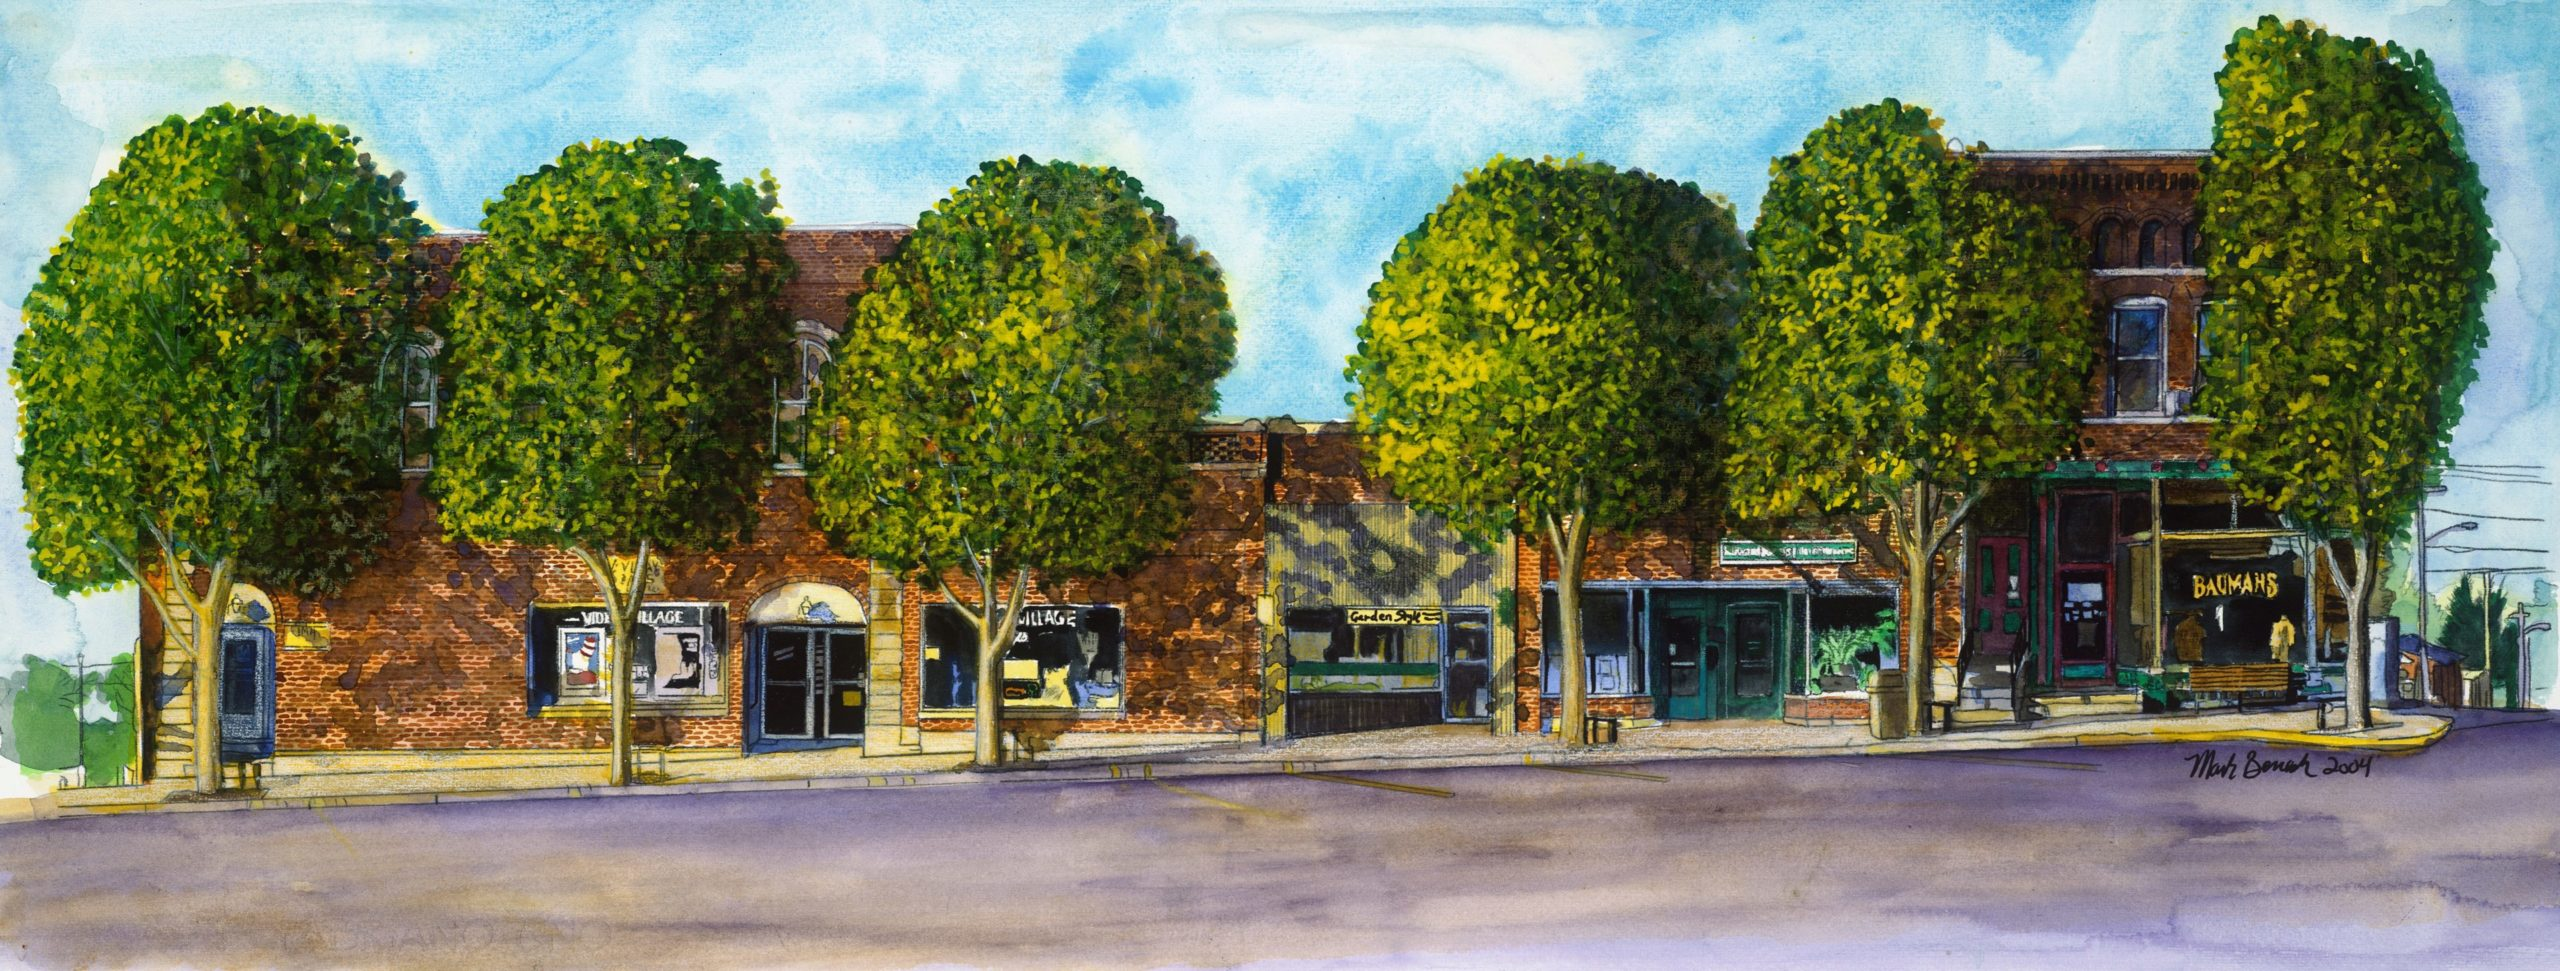 Photo of Painting of Downtown Southside Baumans by Mark Benesh